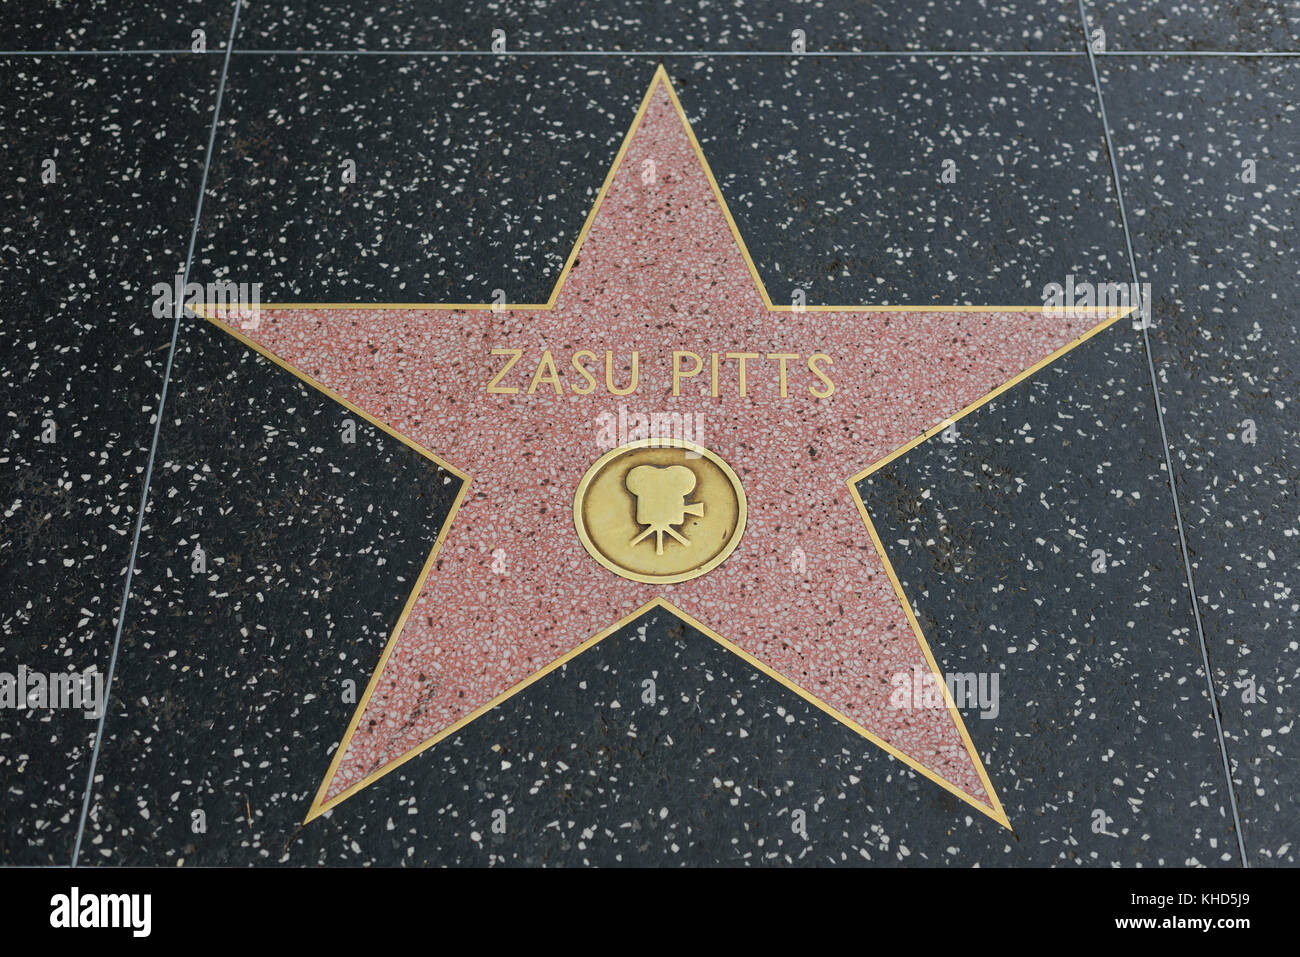 HOLLYWOOD, CA - DECEMBER 06: Zasu Pitts star on the Hollywood Walk of Fame in Hollywood, California on Dec. 6, 2016. - Stock Image